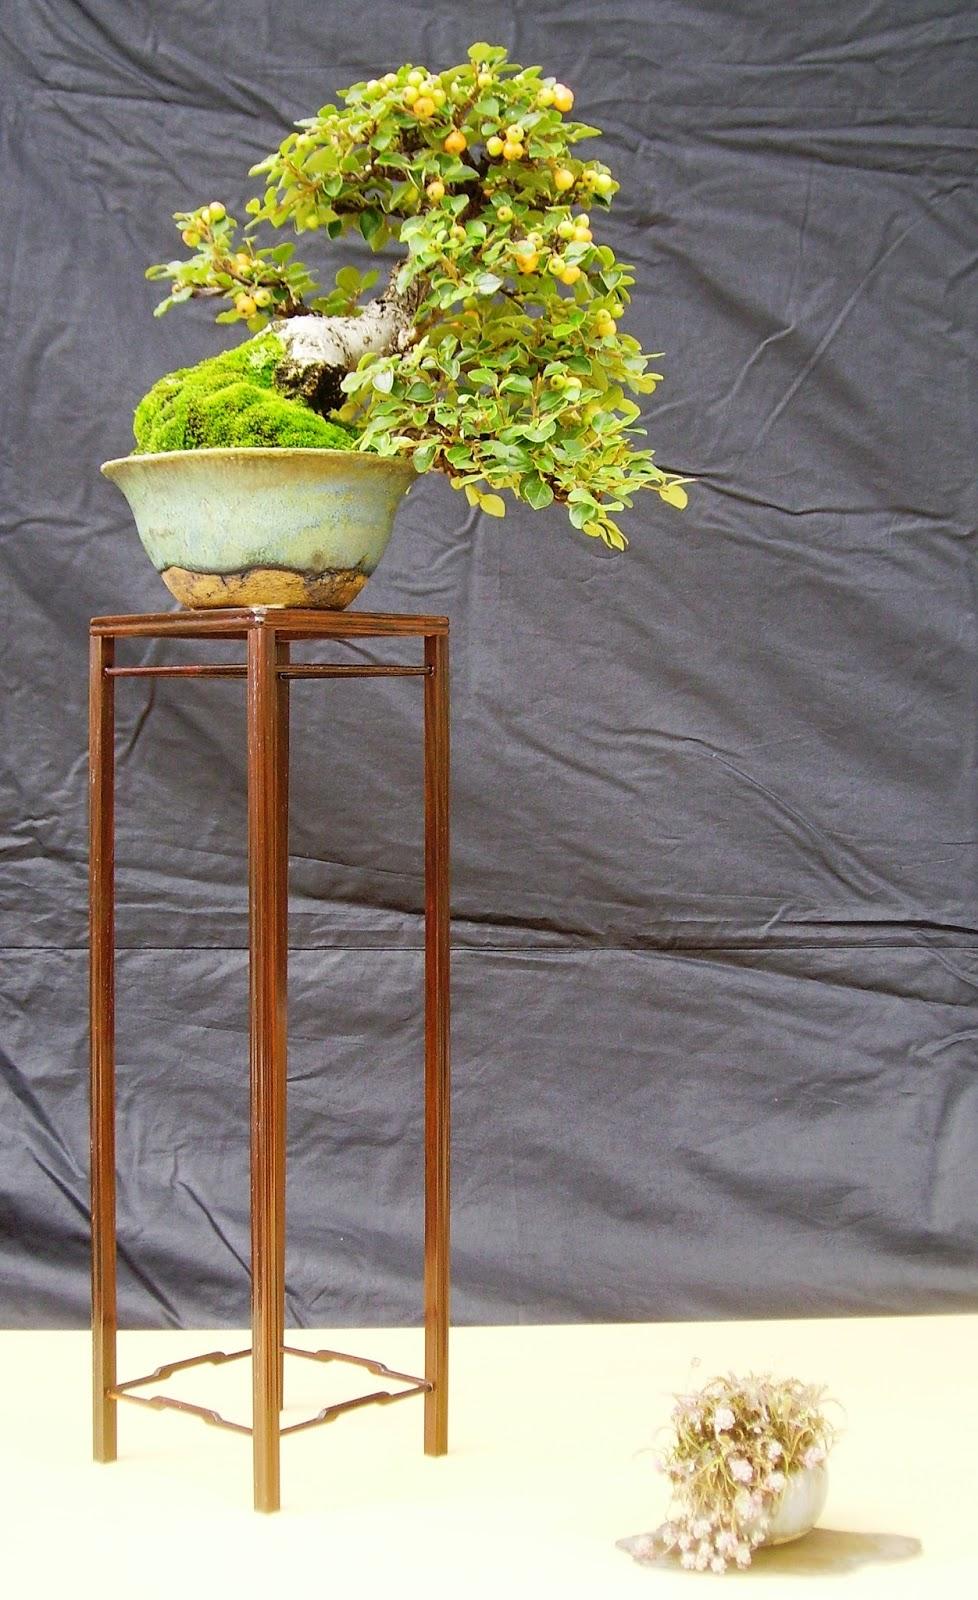 Bespoke Bonsai Stands Getting Ready For An Upcoming Display